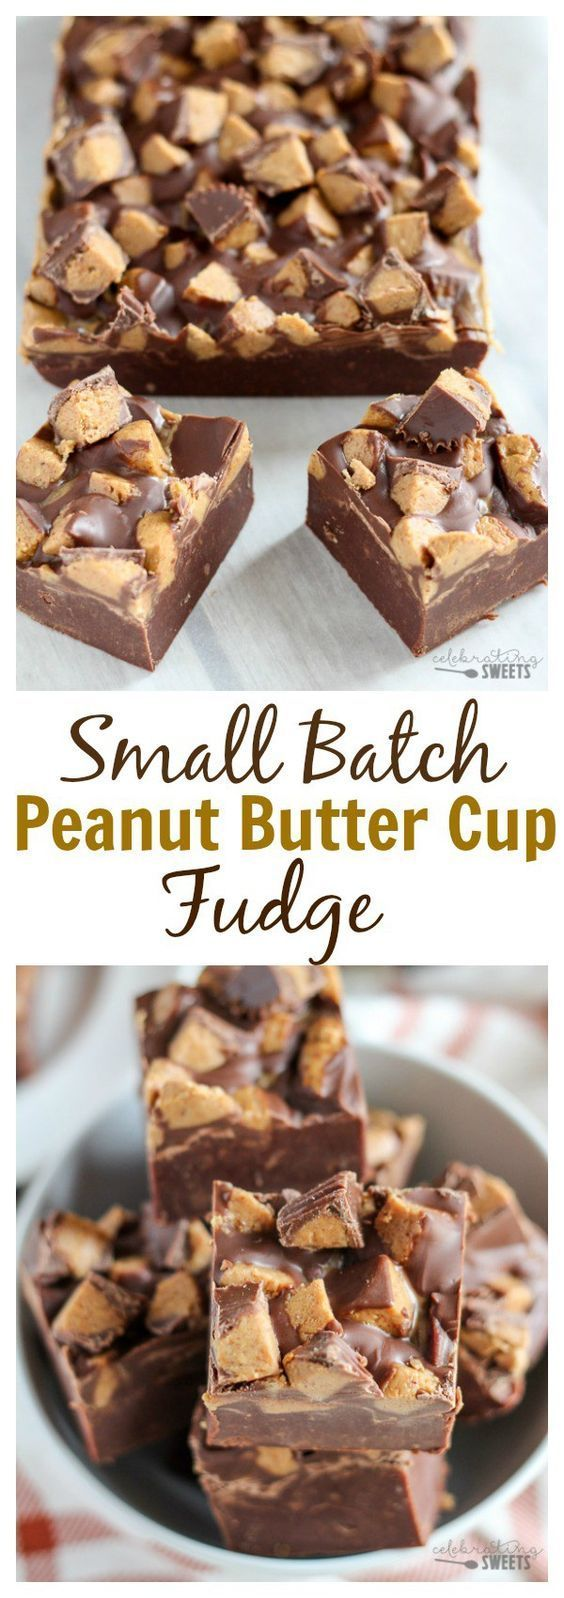 SMALL BATCH PEANUT BUTTER CUP FUDGE #Small #Batch #Peanut #Butter #Cup #fudge #Chocosnickers #Cookies #Bestcookies #Cookiesrecipe #Dessert #Italiandessert #Americandessert #Canadianrecipe #Canadiandessert